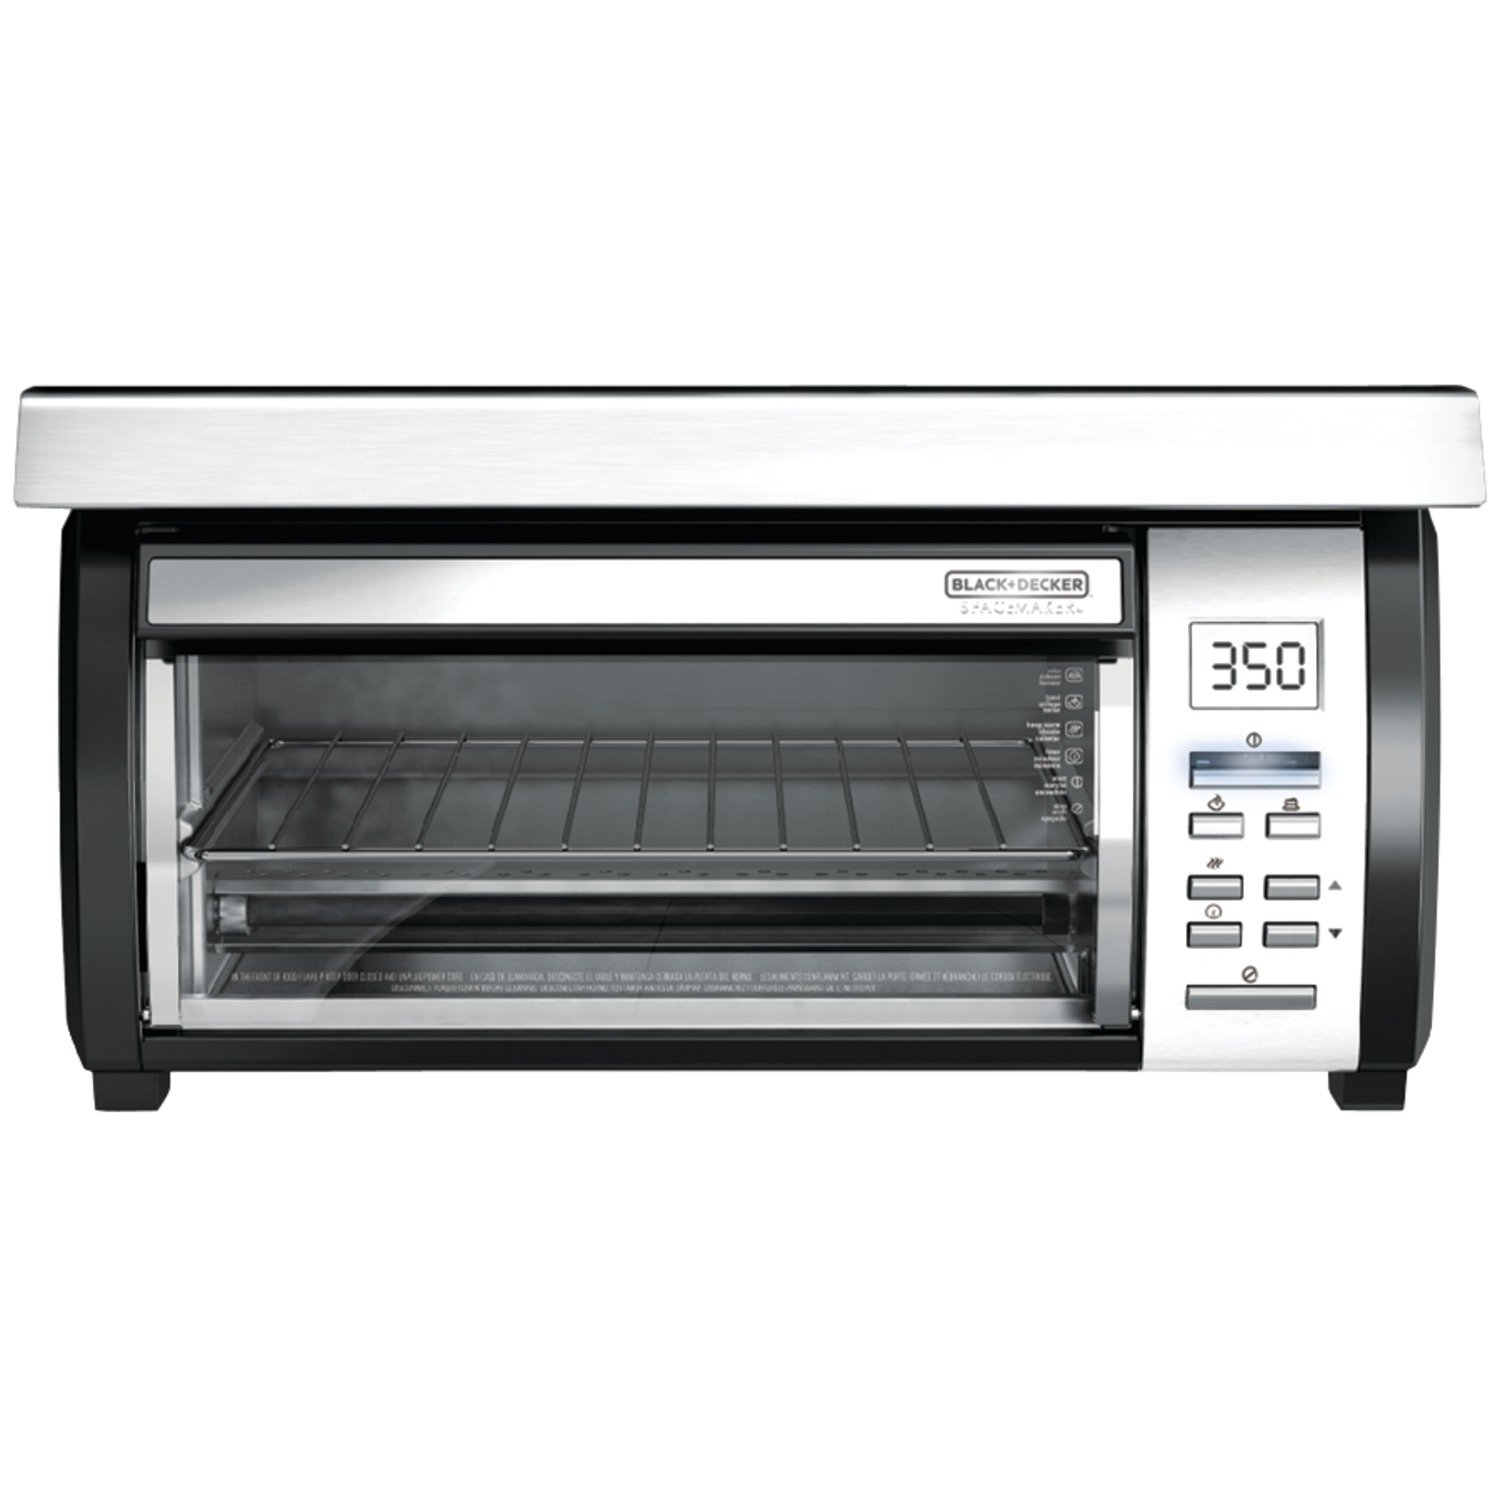 BLACK+DECKER TROS1000D SpaceMaker Under The Cabinet 4-Slice Toaster Oven